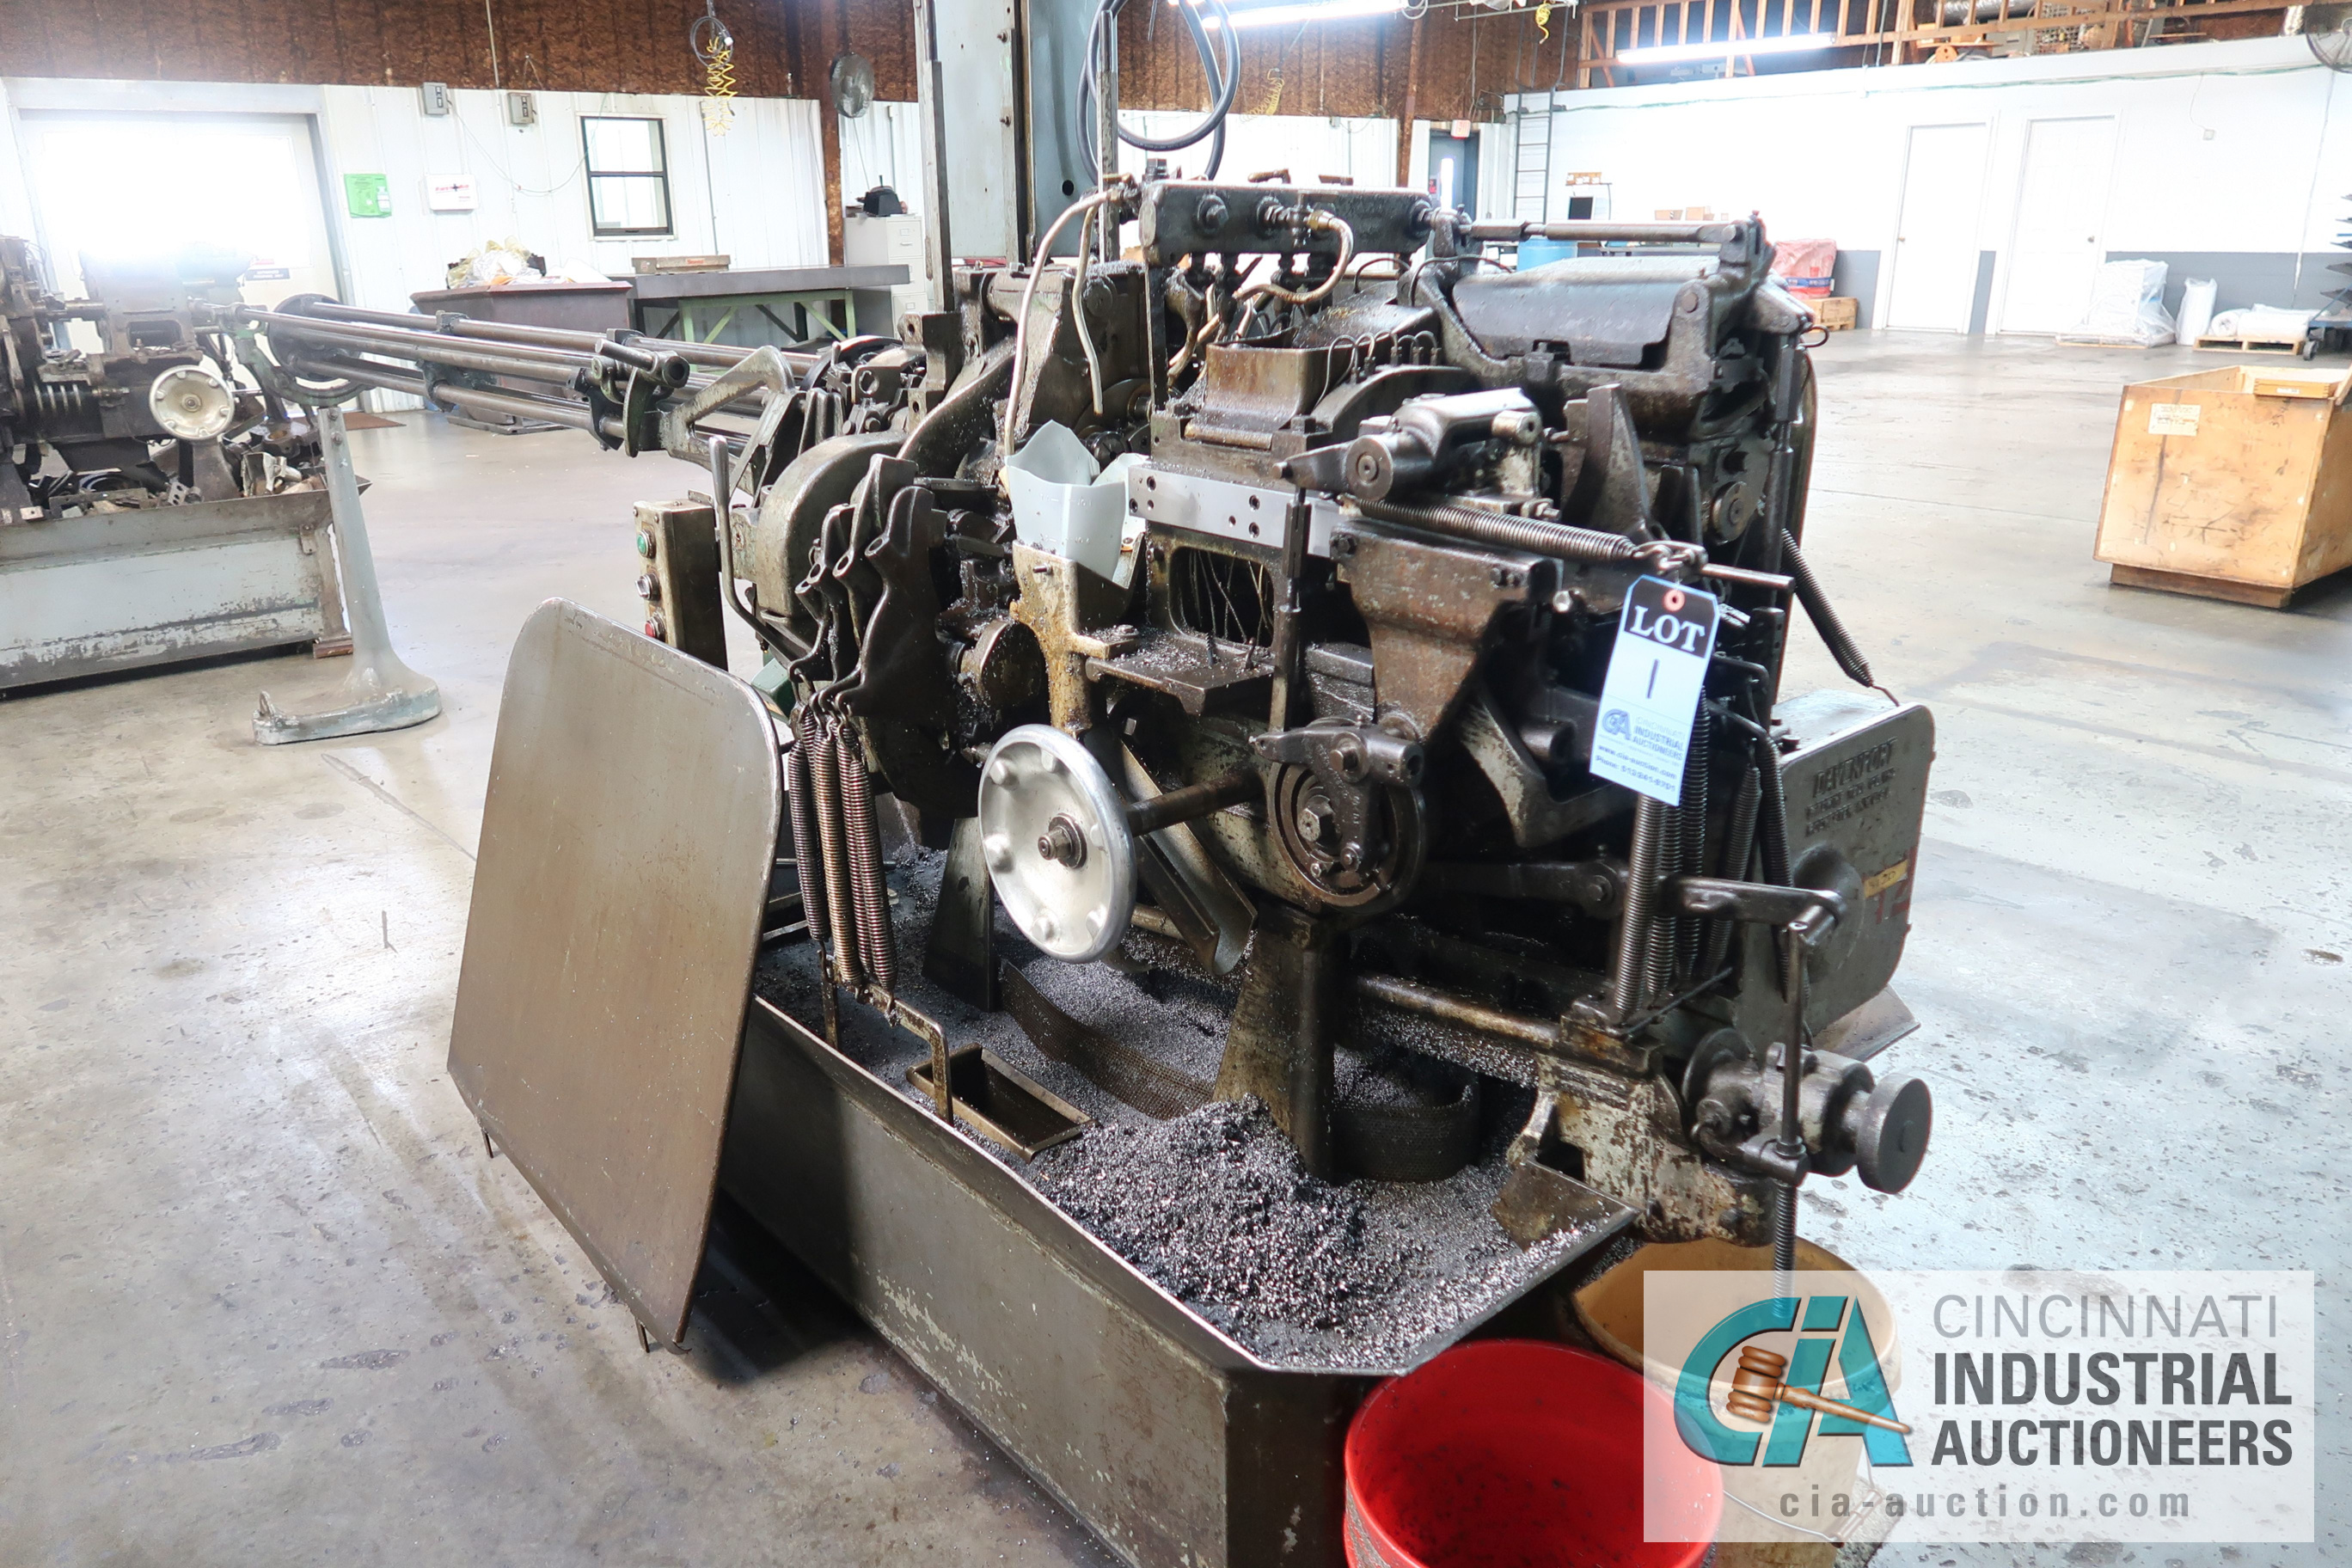 """3/4"""" DAVENPORT 5-SPINDLE SCREW MACHINE; S/N 5698, WITH PICKOFF ATTACHMENT AND THREADING CLUTCH, - Image 3 of 4"""